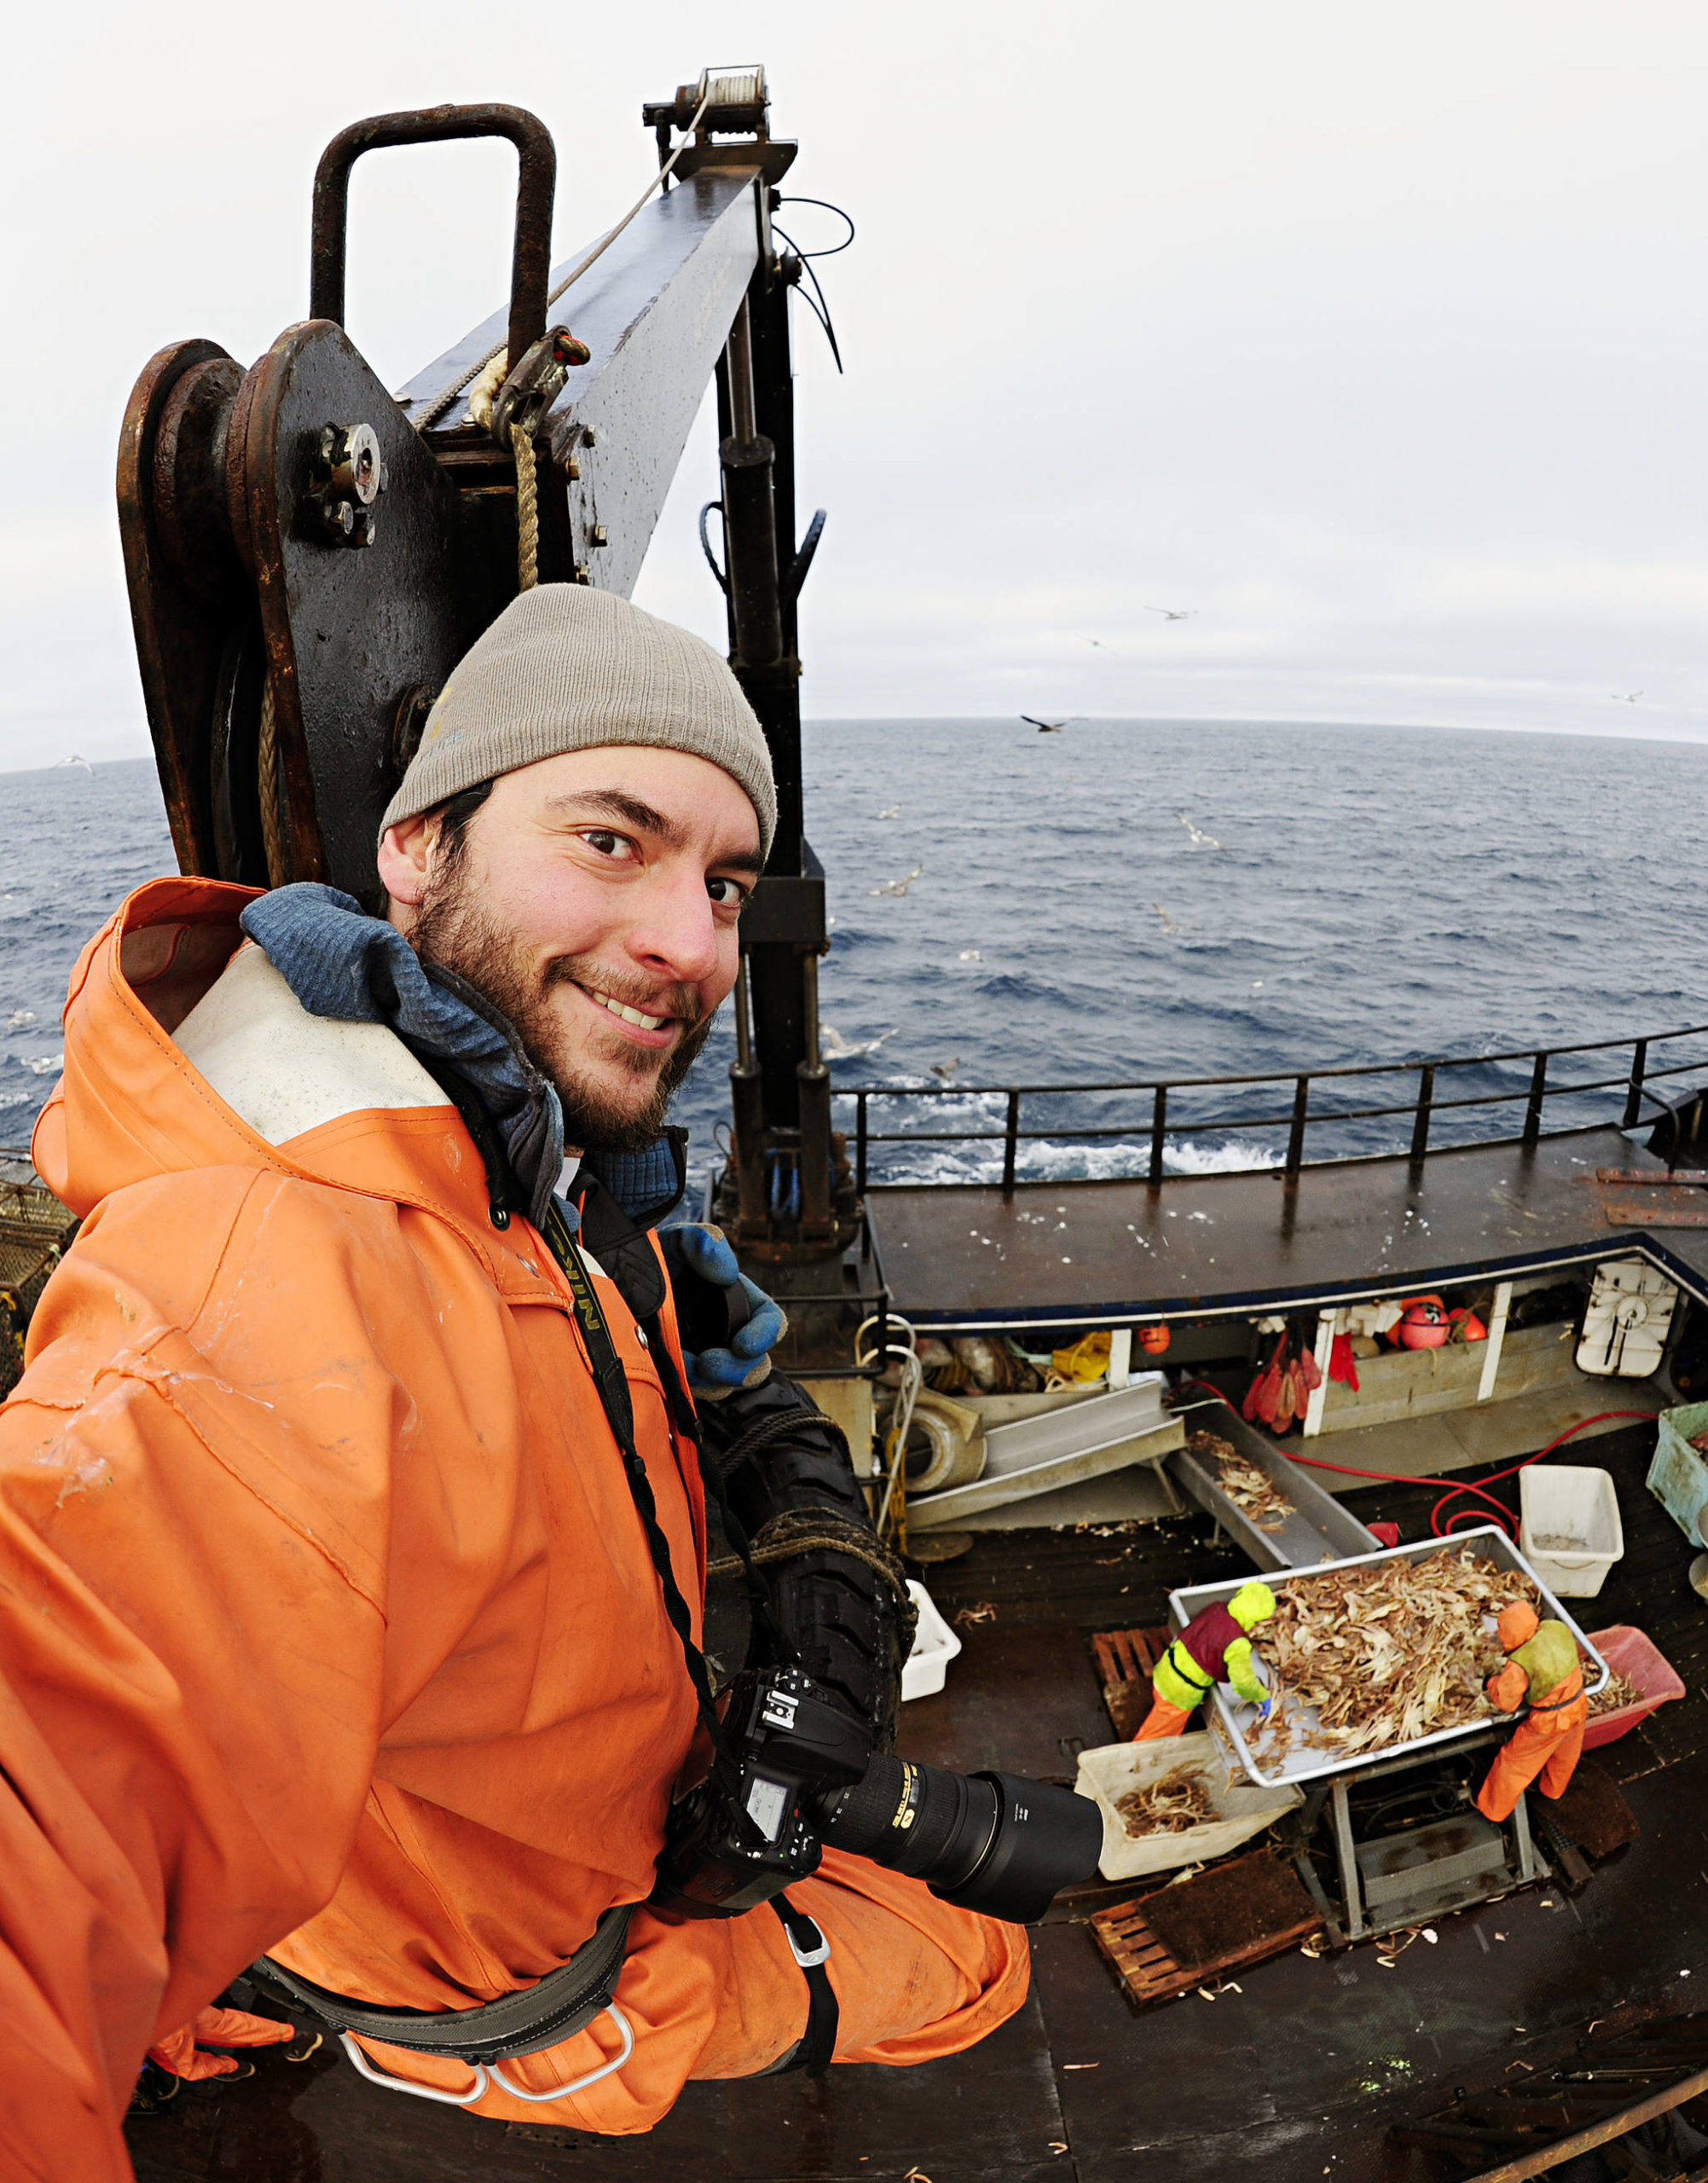 Chris Miller photographing the Bering Sea crab fishery. (Courtesy Photo / Chris Miller)